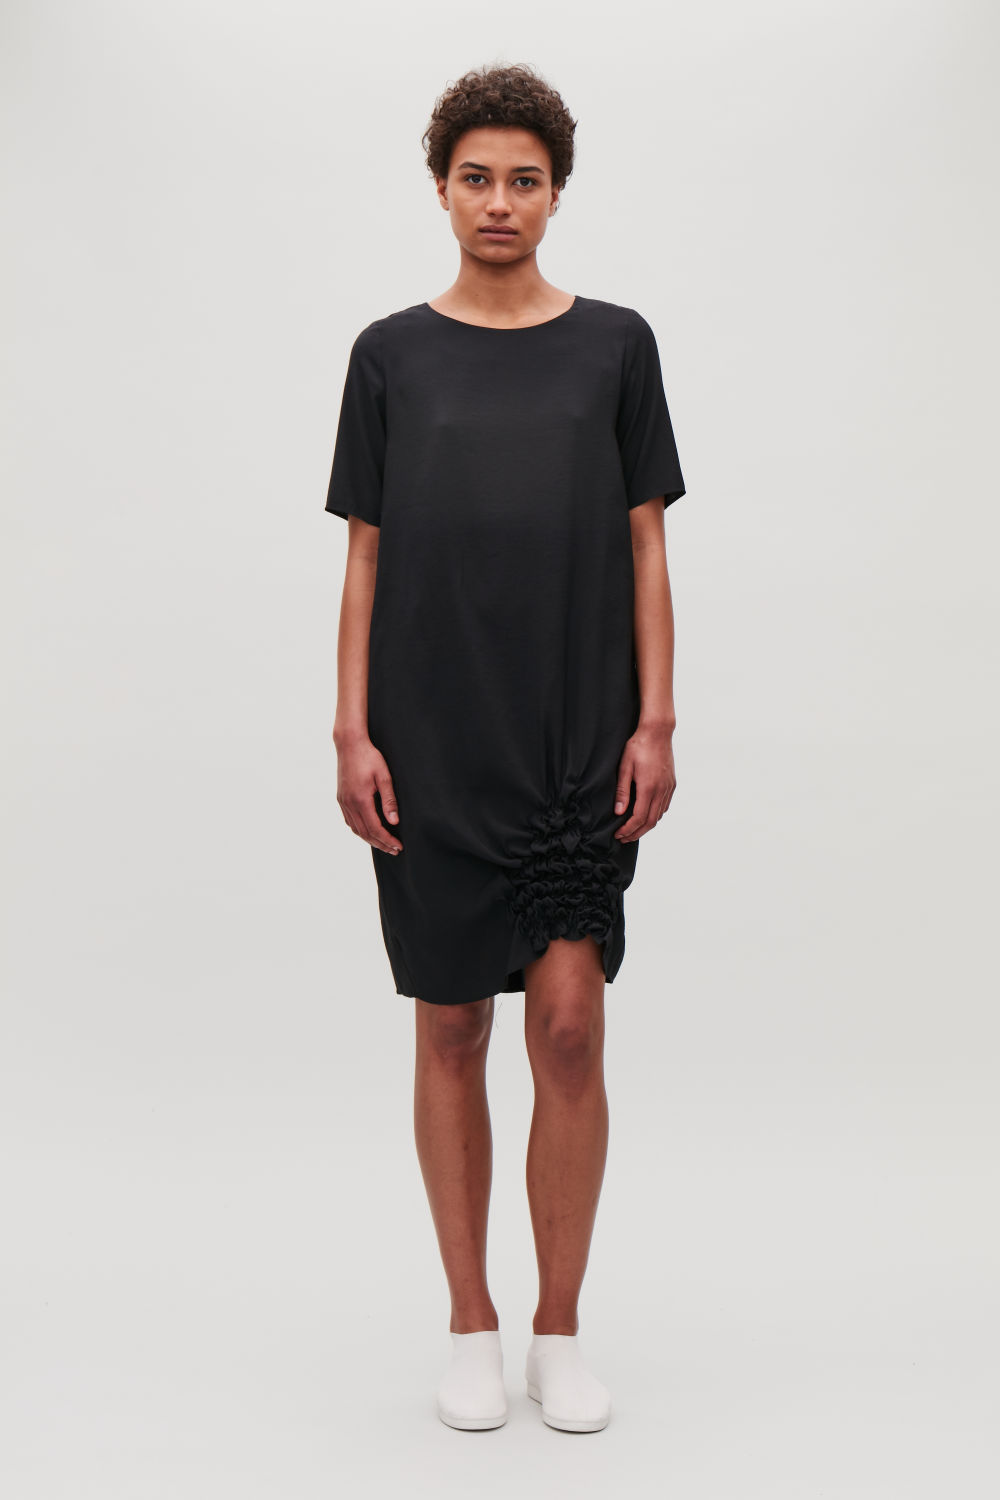 COS DRESS WITH GATHERED DETAIL,Black